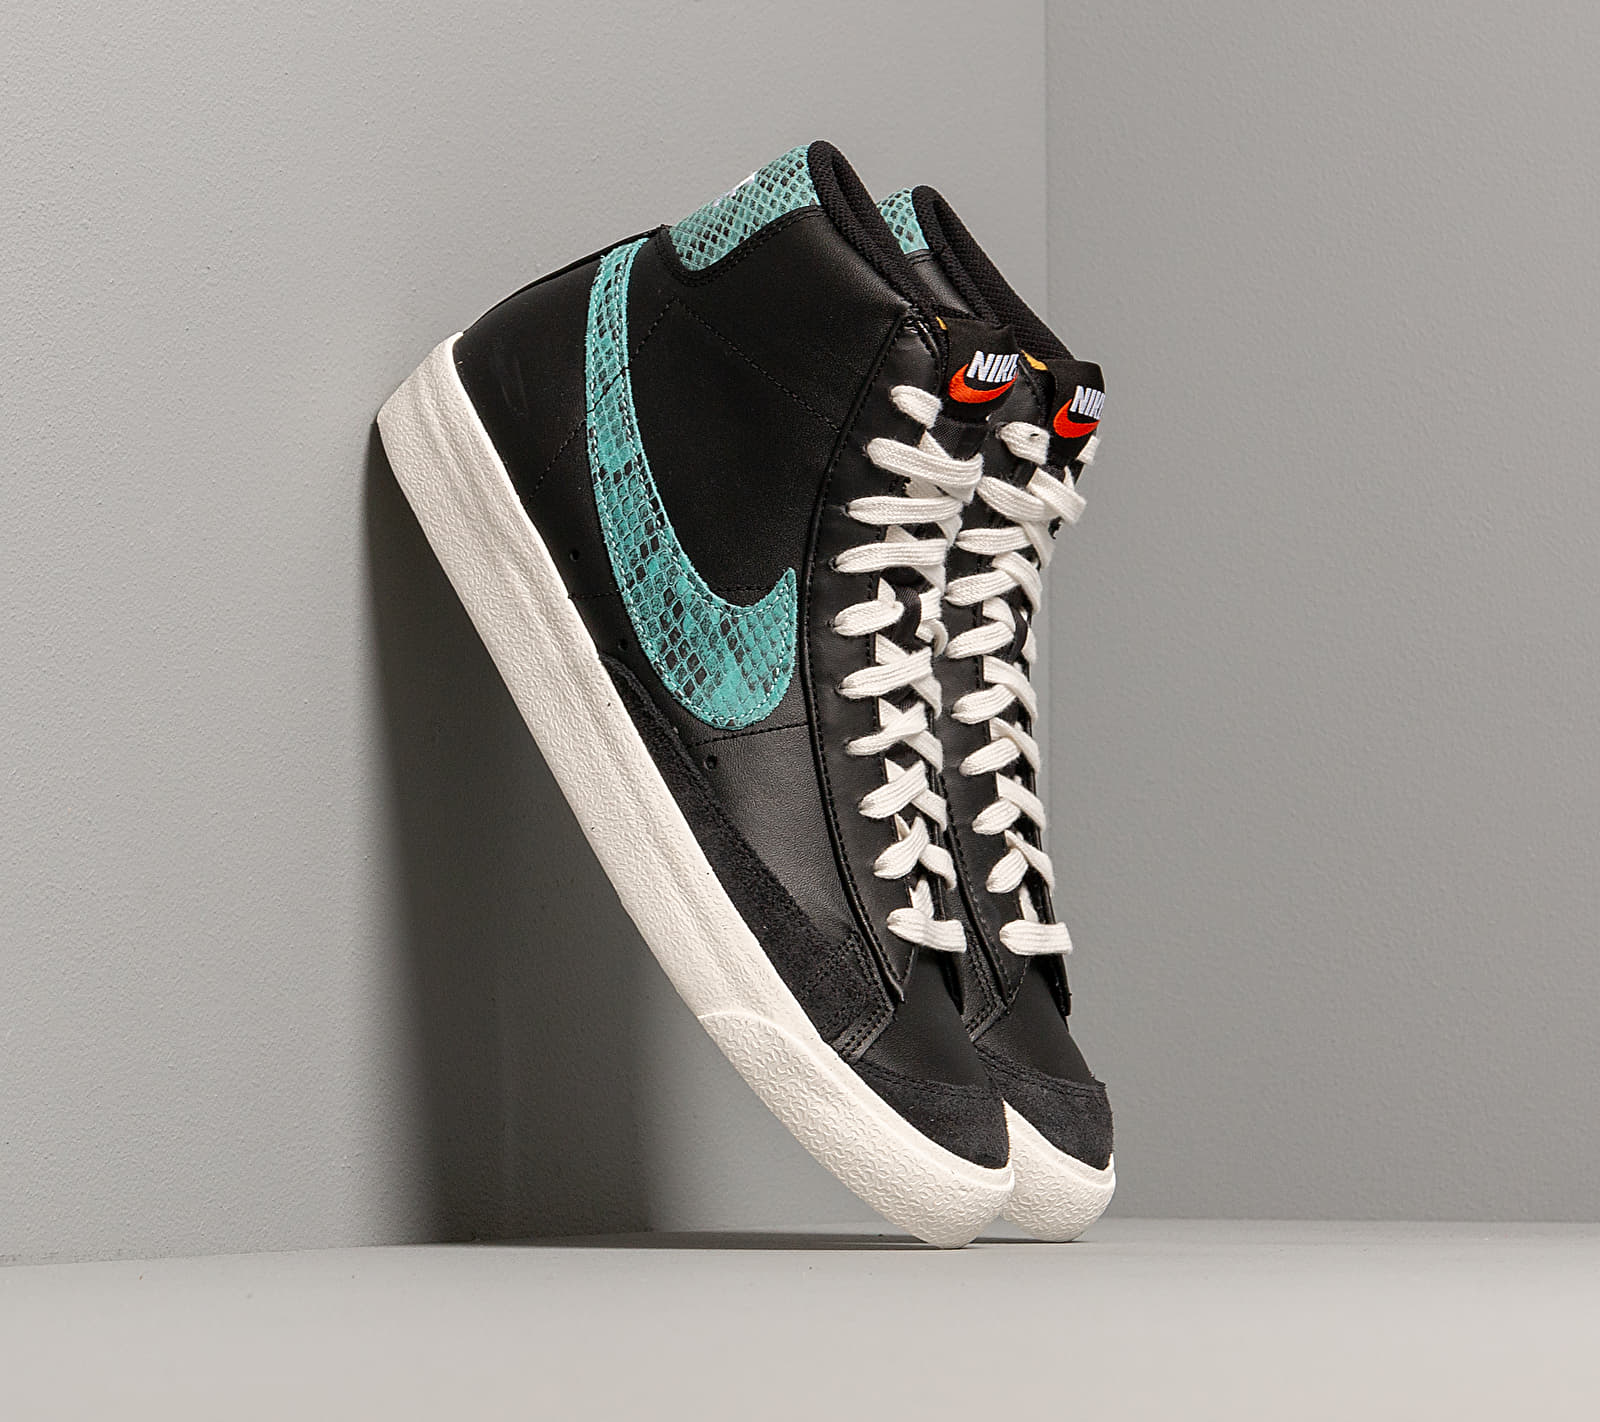 Nike Blazer Mid '77 Vintage We Reptile Black/ Light Aqua-Sail EUR 43